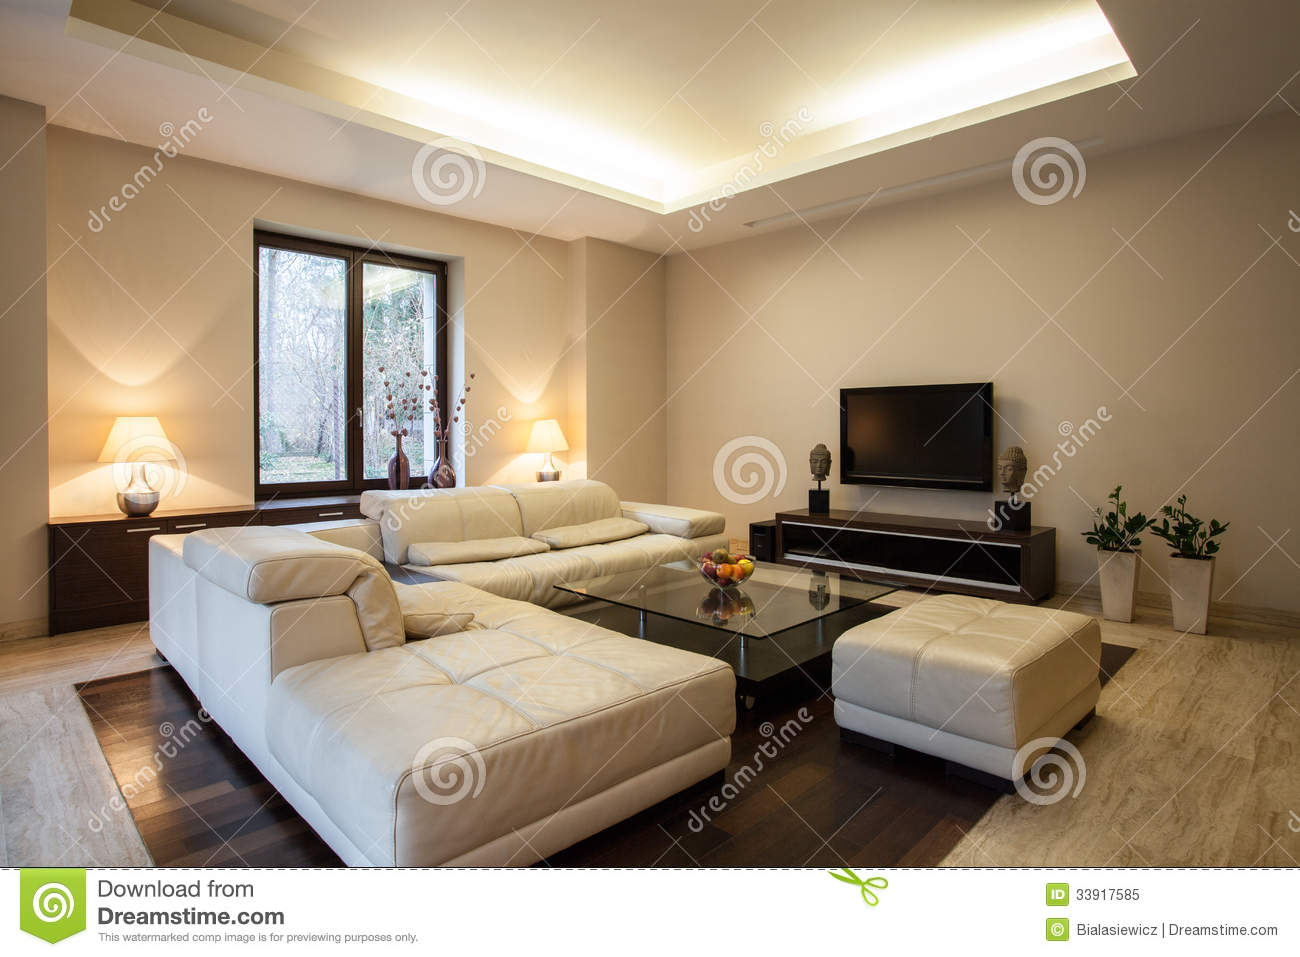 Travertine House: Horizontal View On Interior Stock Image - Image of ...